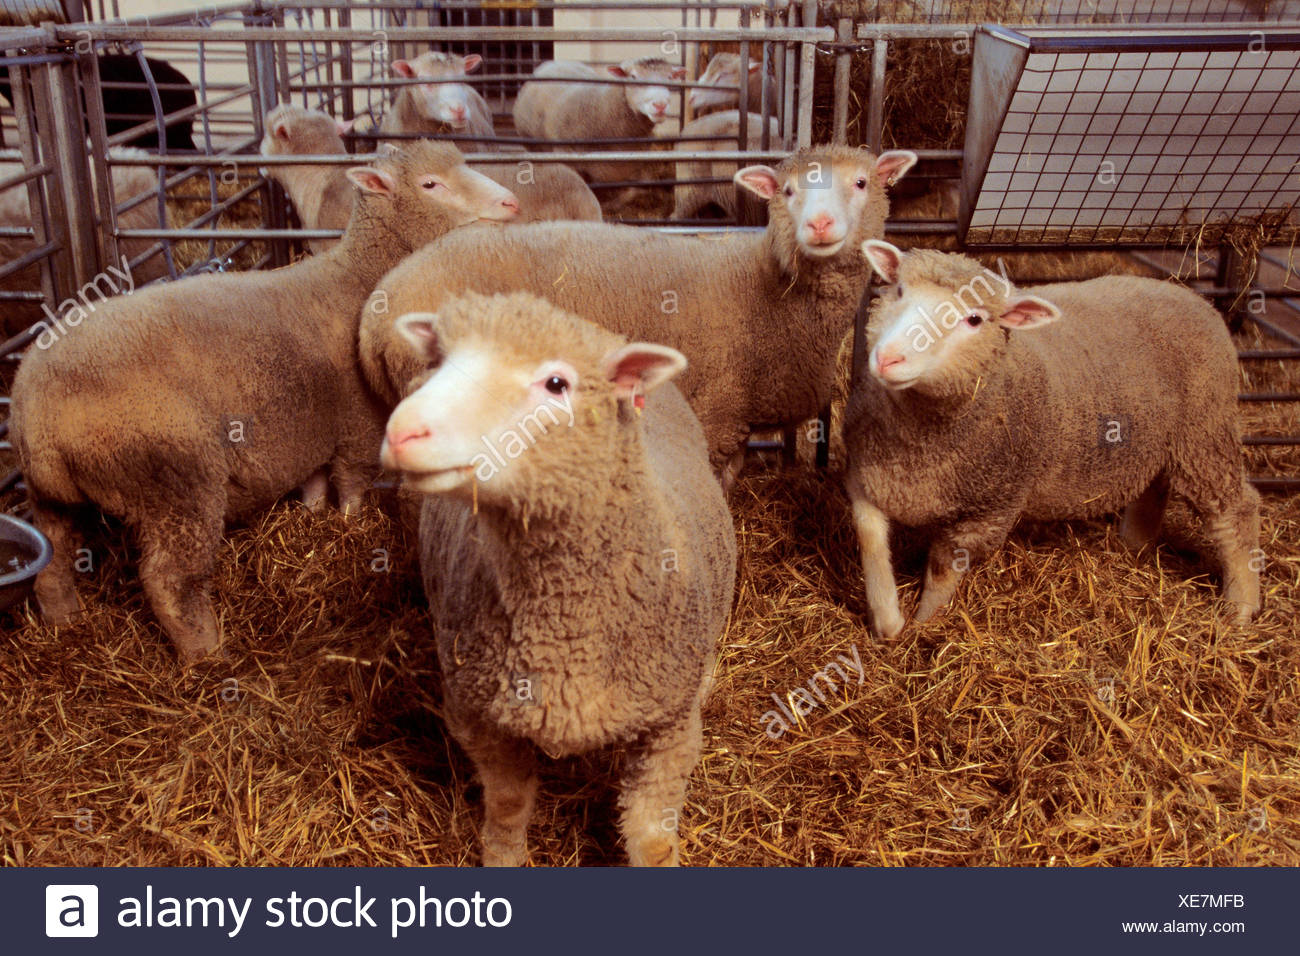 the cloning of dolly sheep Cloning is a technique of creating organisms that are exactly the same as their parent or the original one from which they are created since the beginning of the cloning phenomenon that was first carried out by hans spemann in 1938 when he split salamander embryonic cells using baby hair and found.